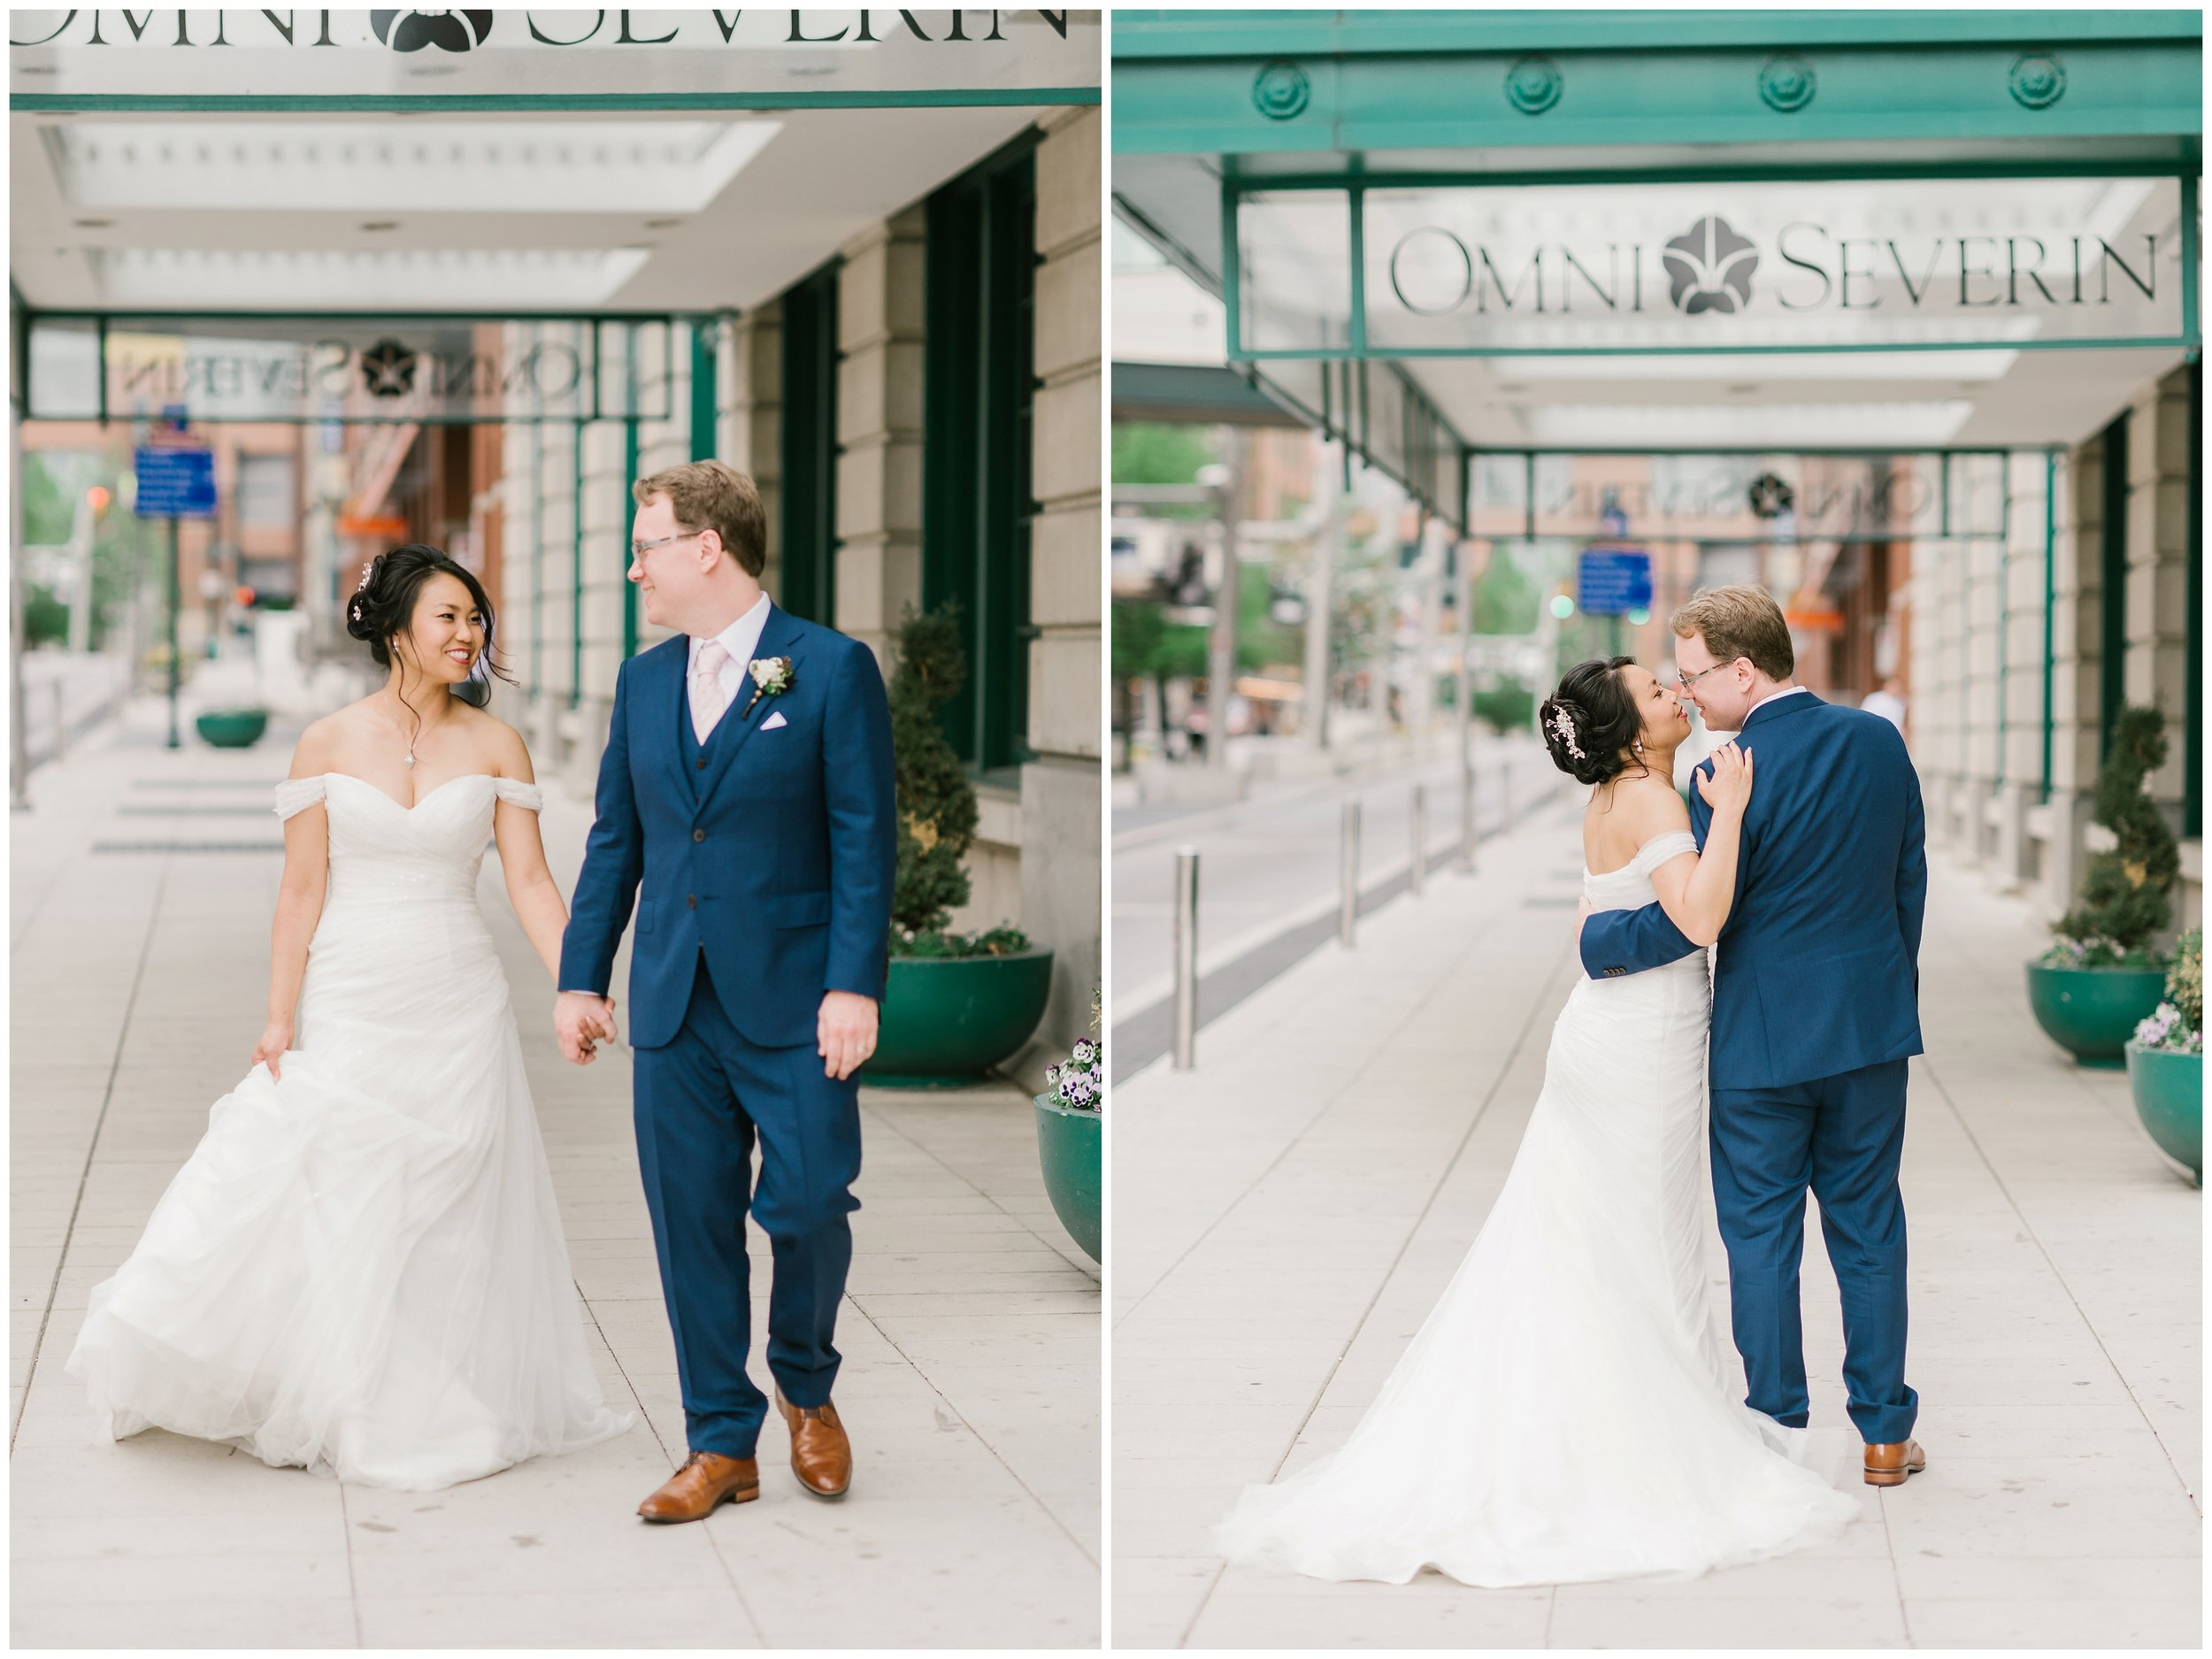 Rebecca_Shehorn_Photography_Indianapolis_Wedding_Photographer_8163.jpg